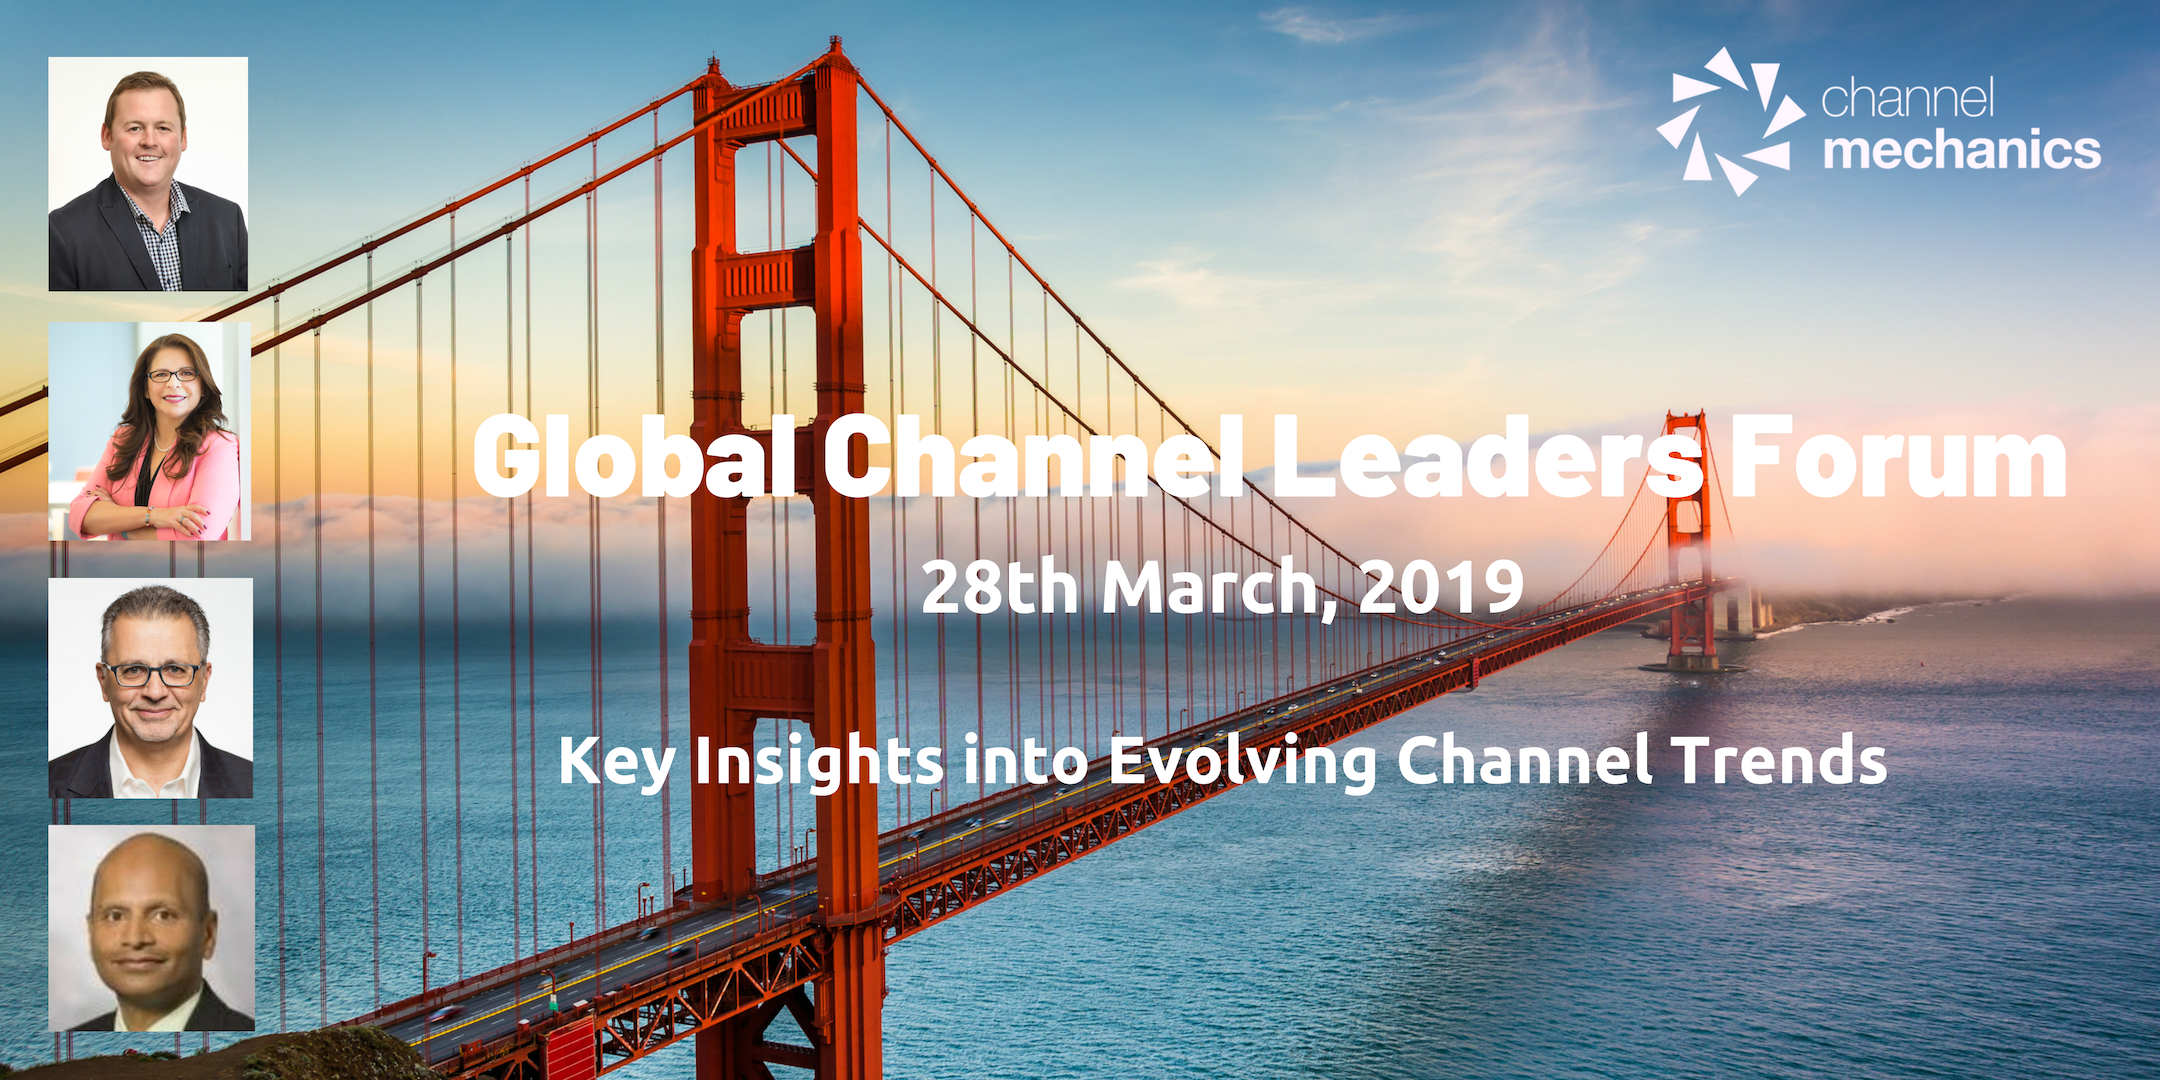 Testarossa was the place to be for the Channel Mechanics Global Channel Leaders Forum 2019 - Channel Mechanics